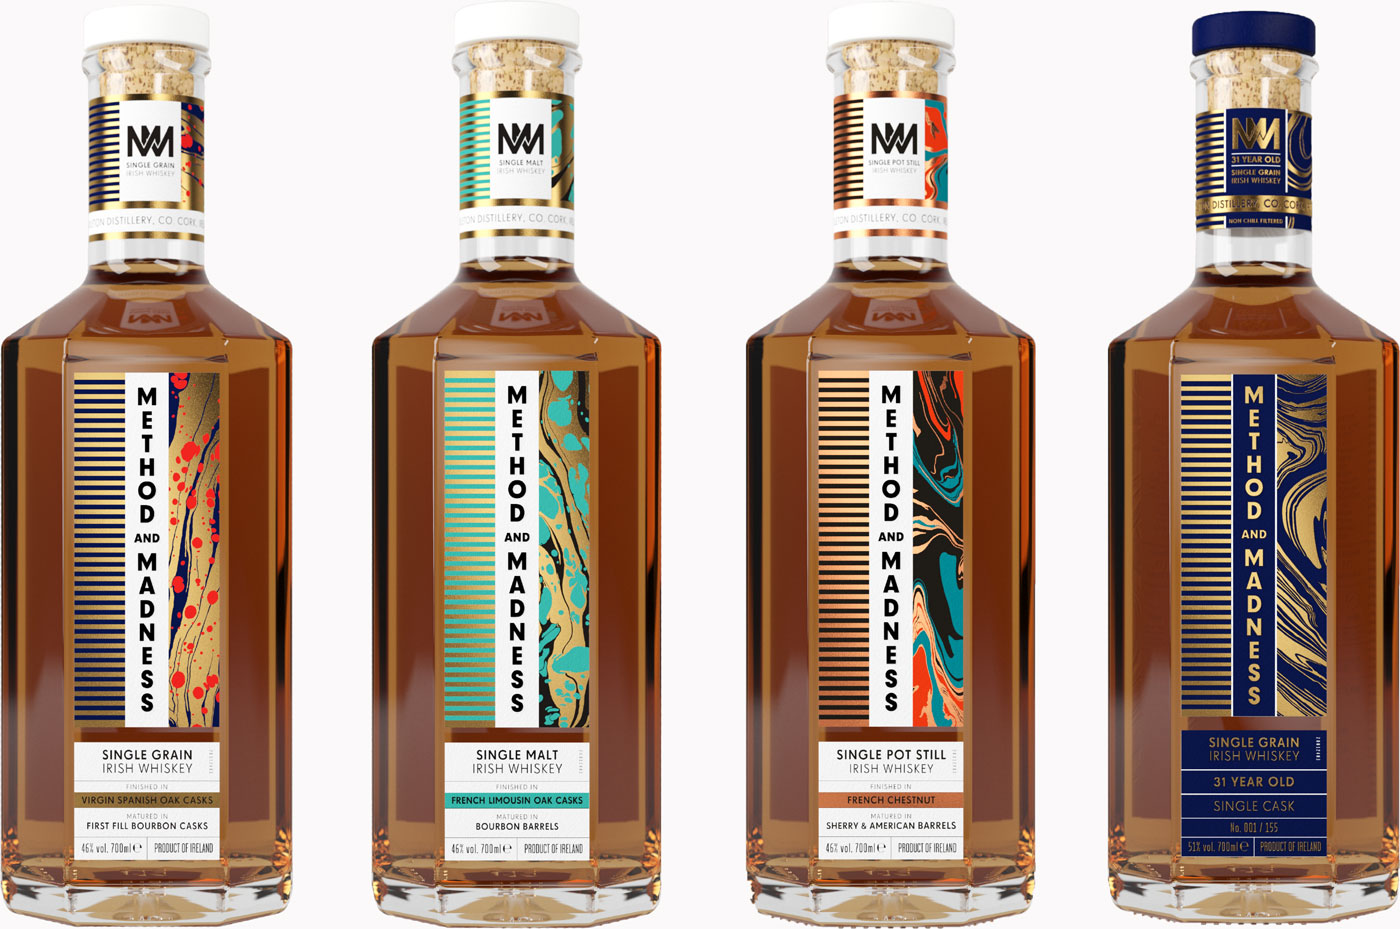 Method And Madness Whiskey bottles